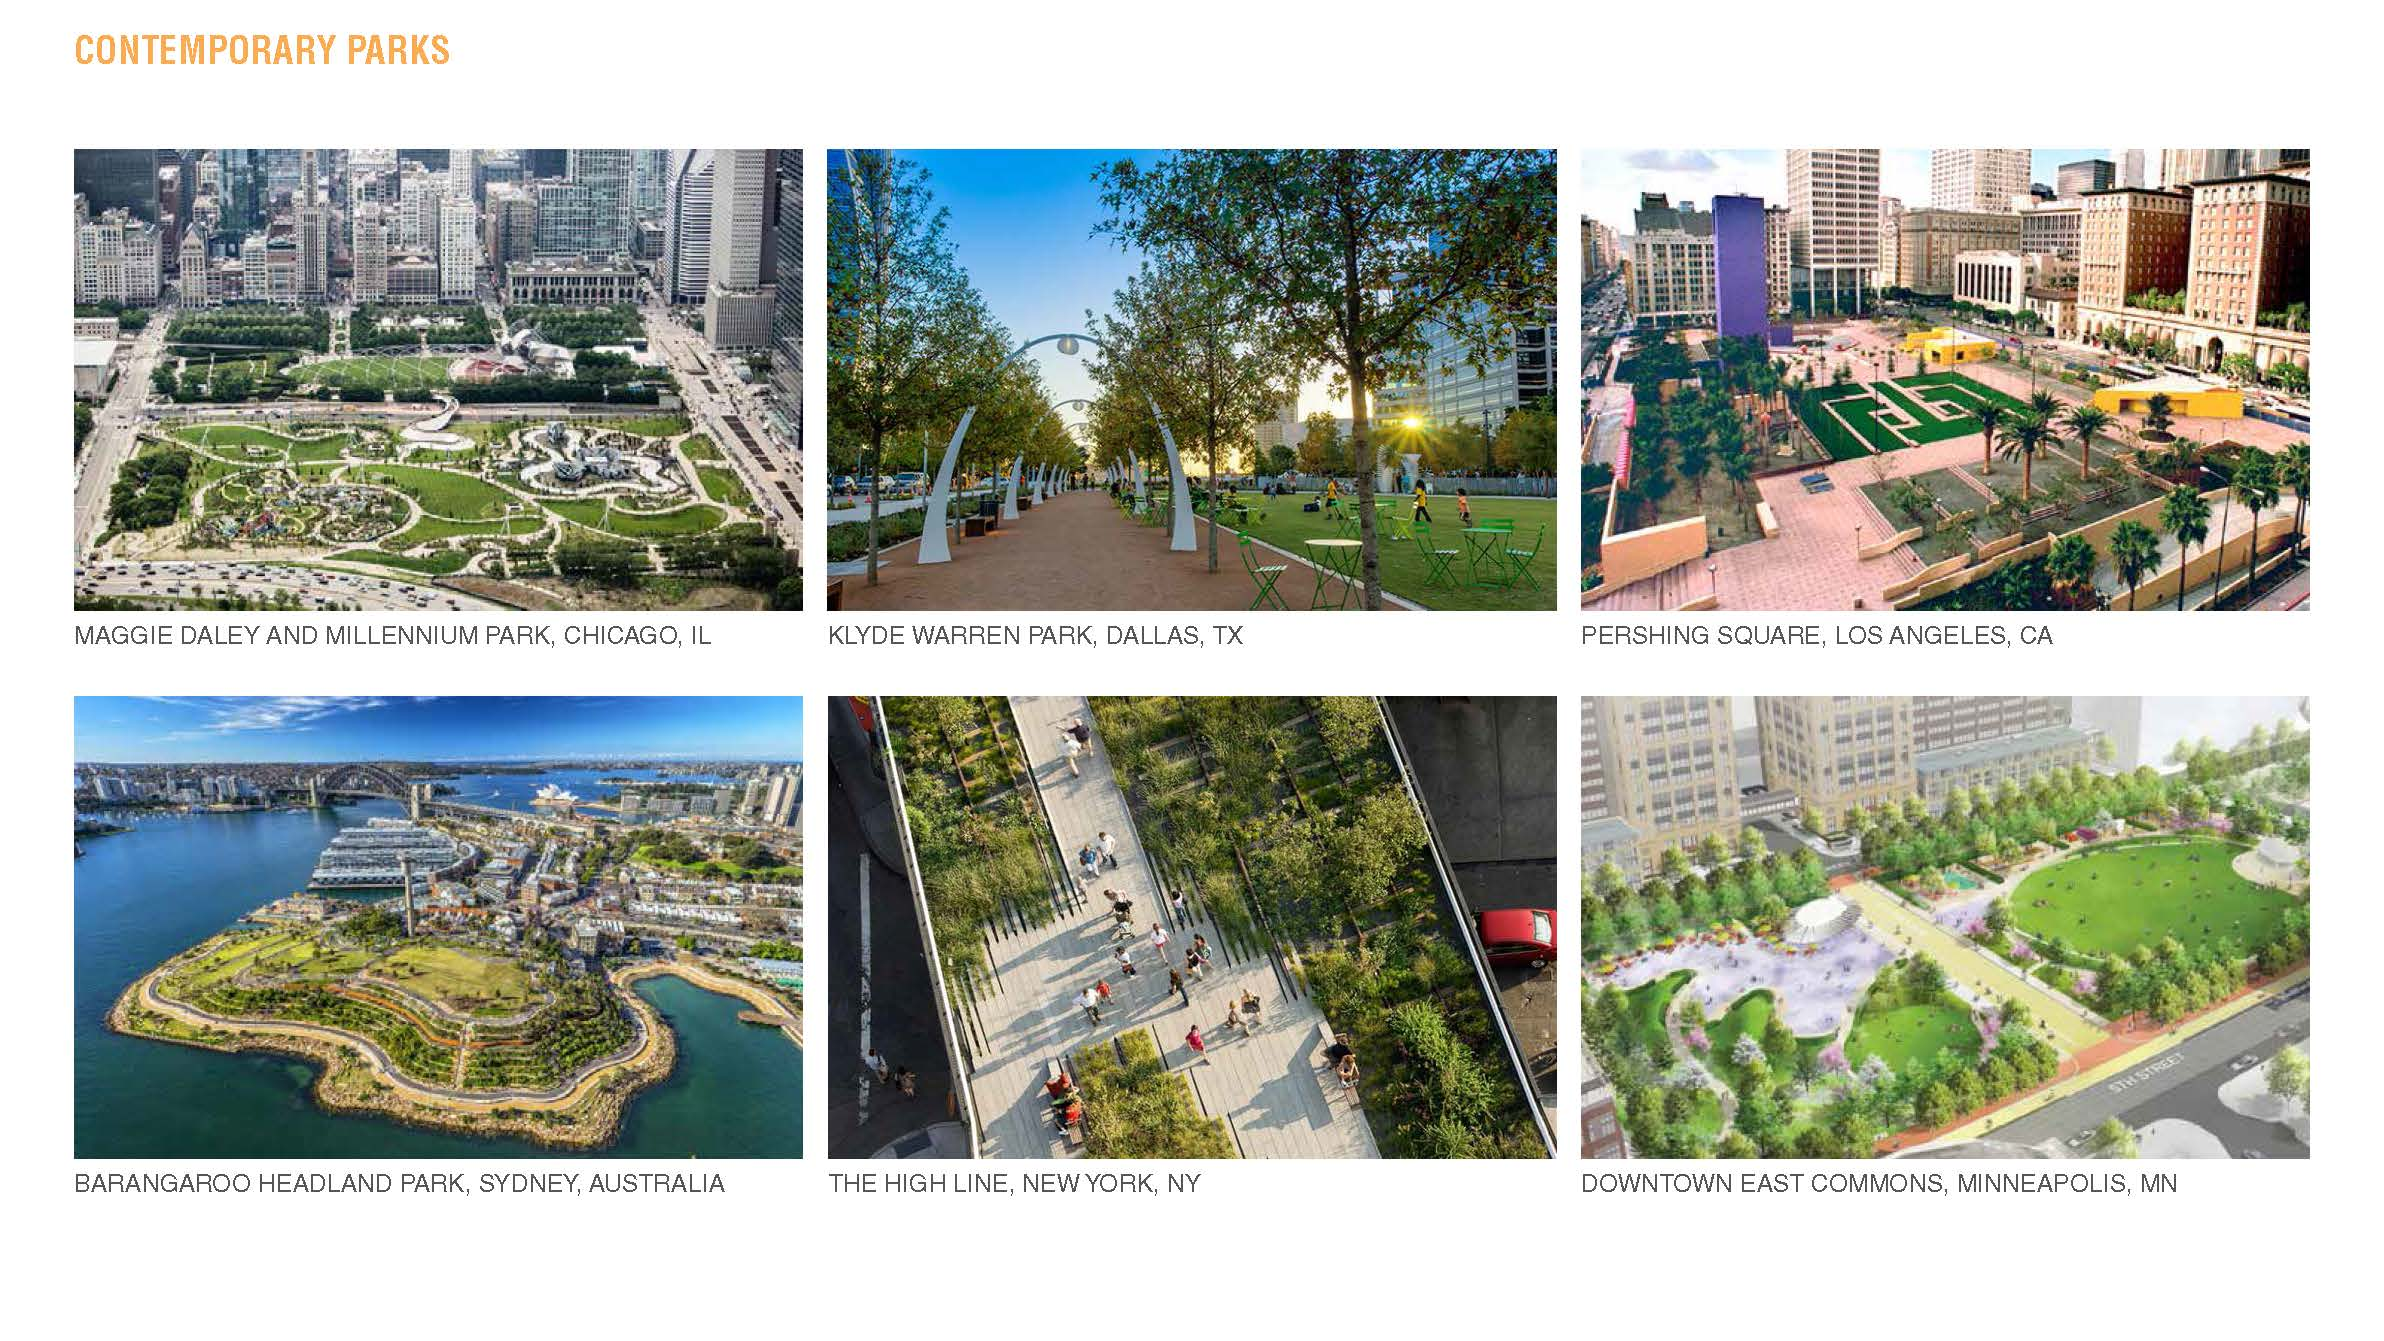 7741_20160713_South Grant Park Charrette Presentation_low res_Page_35.jpg